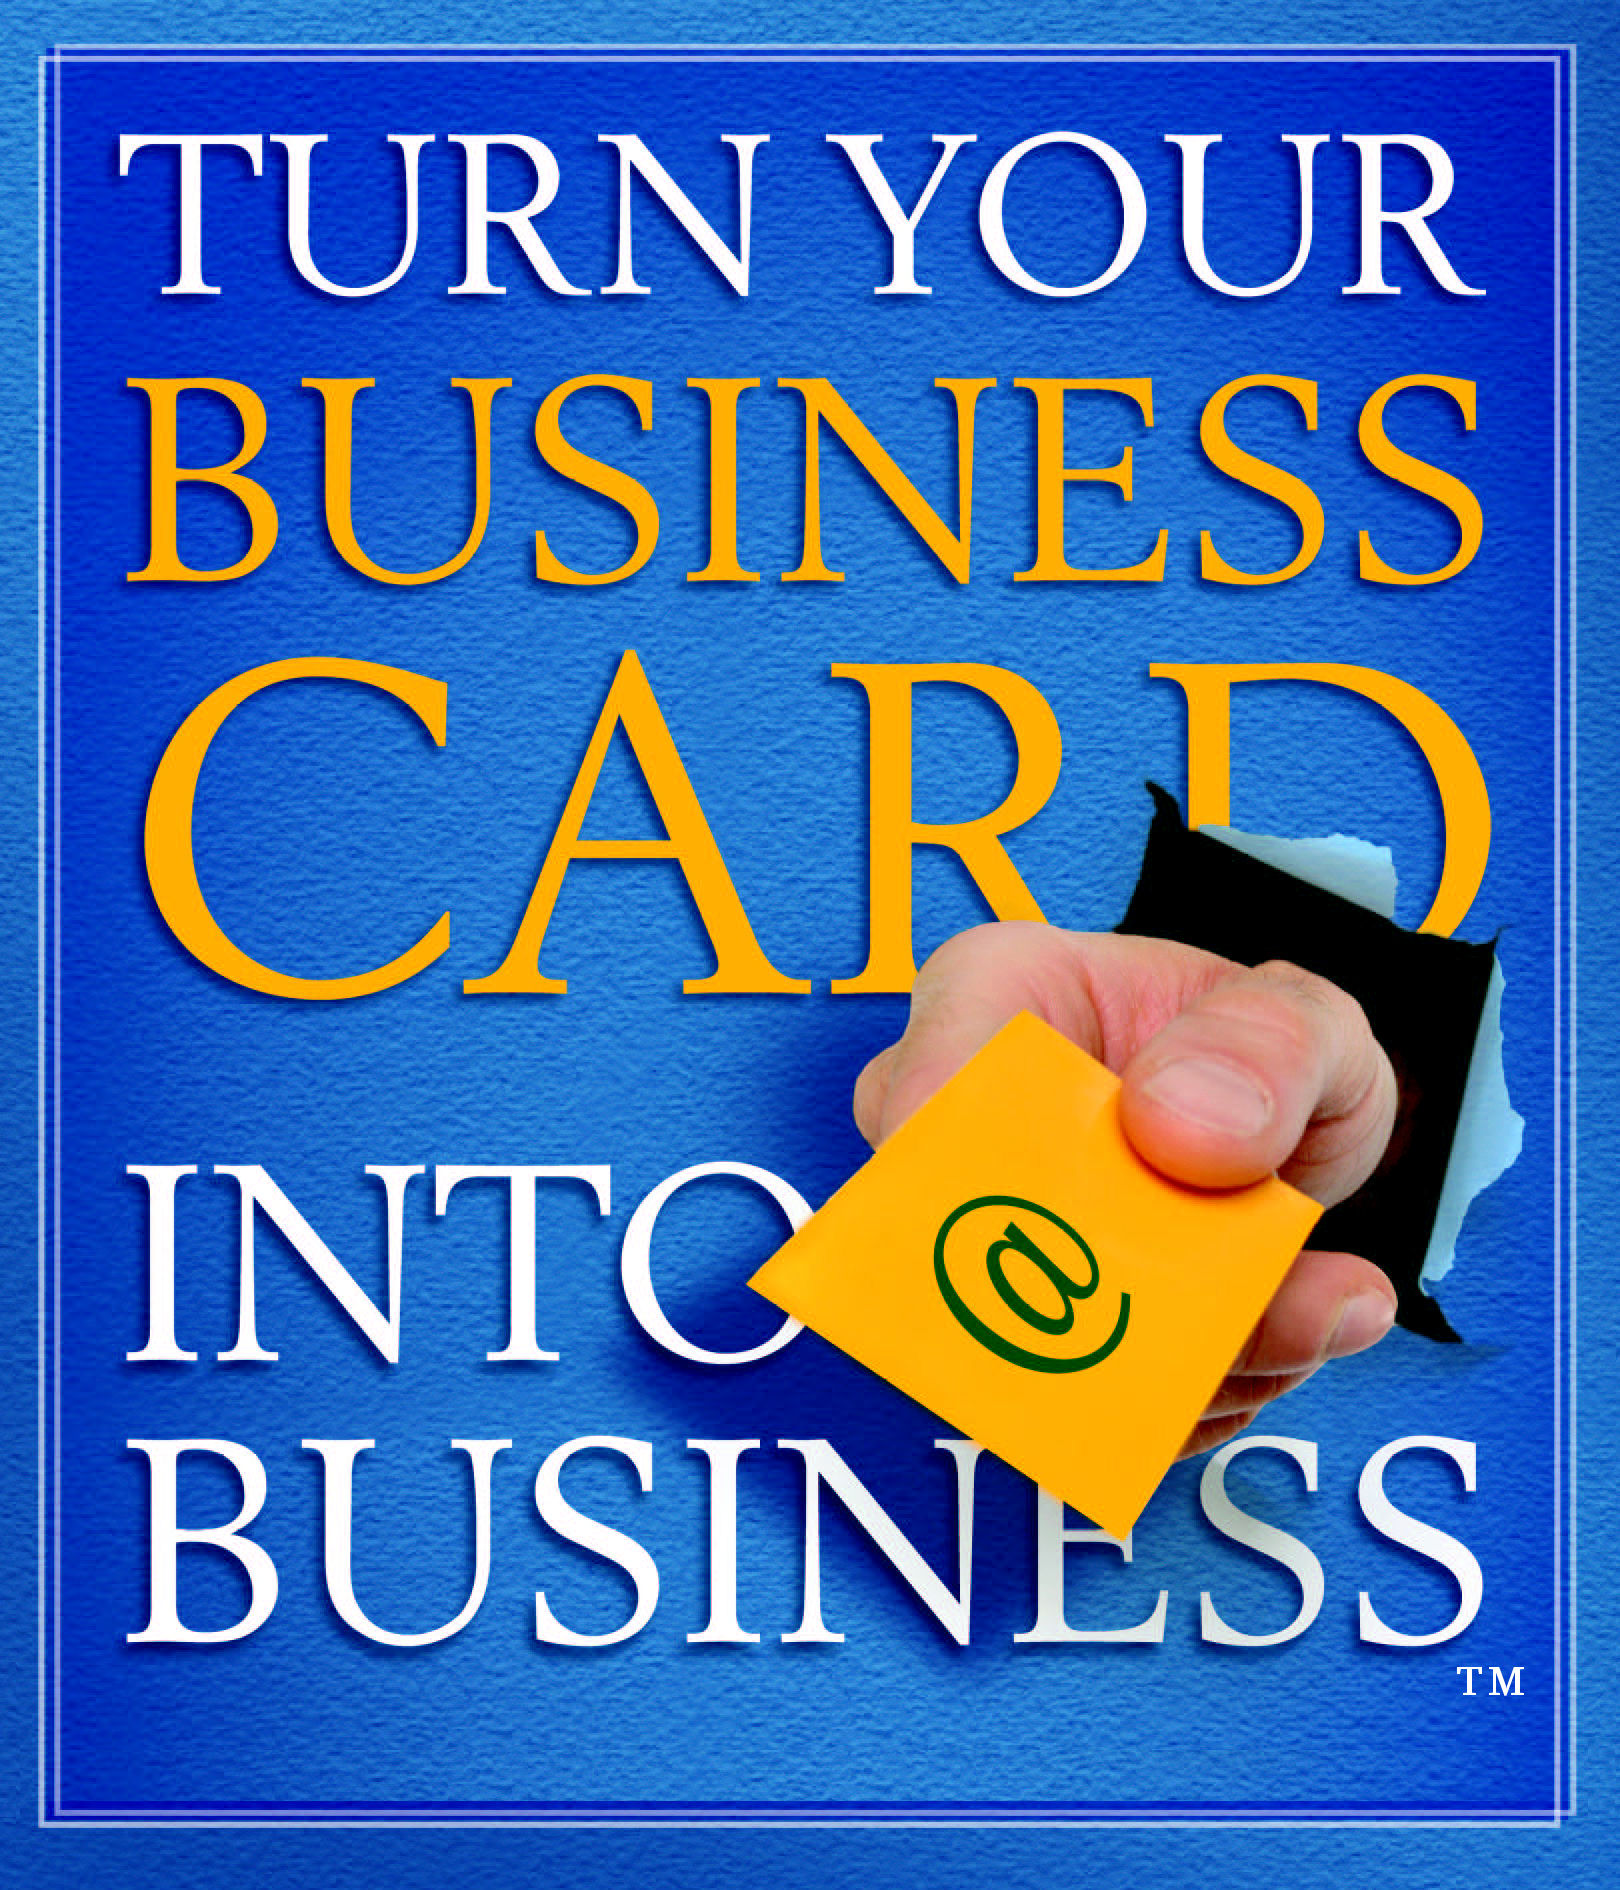 About – Business Card to Business